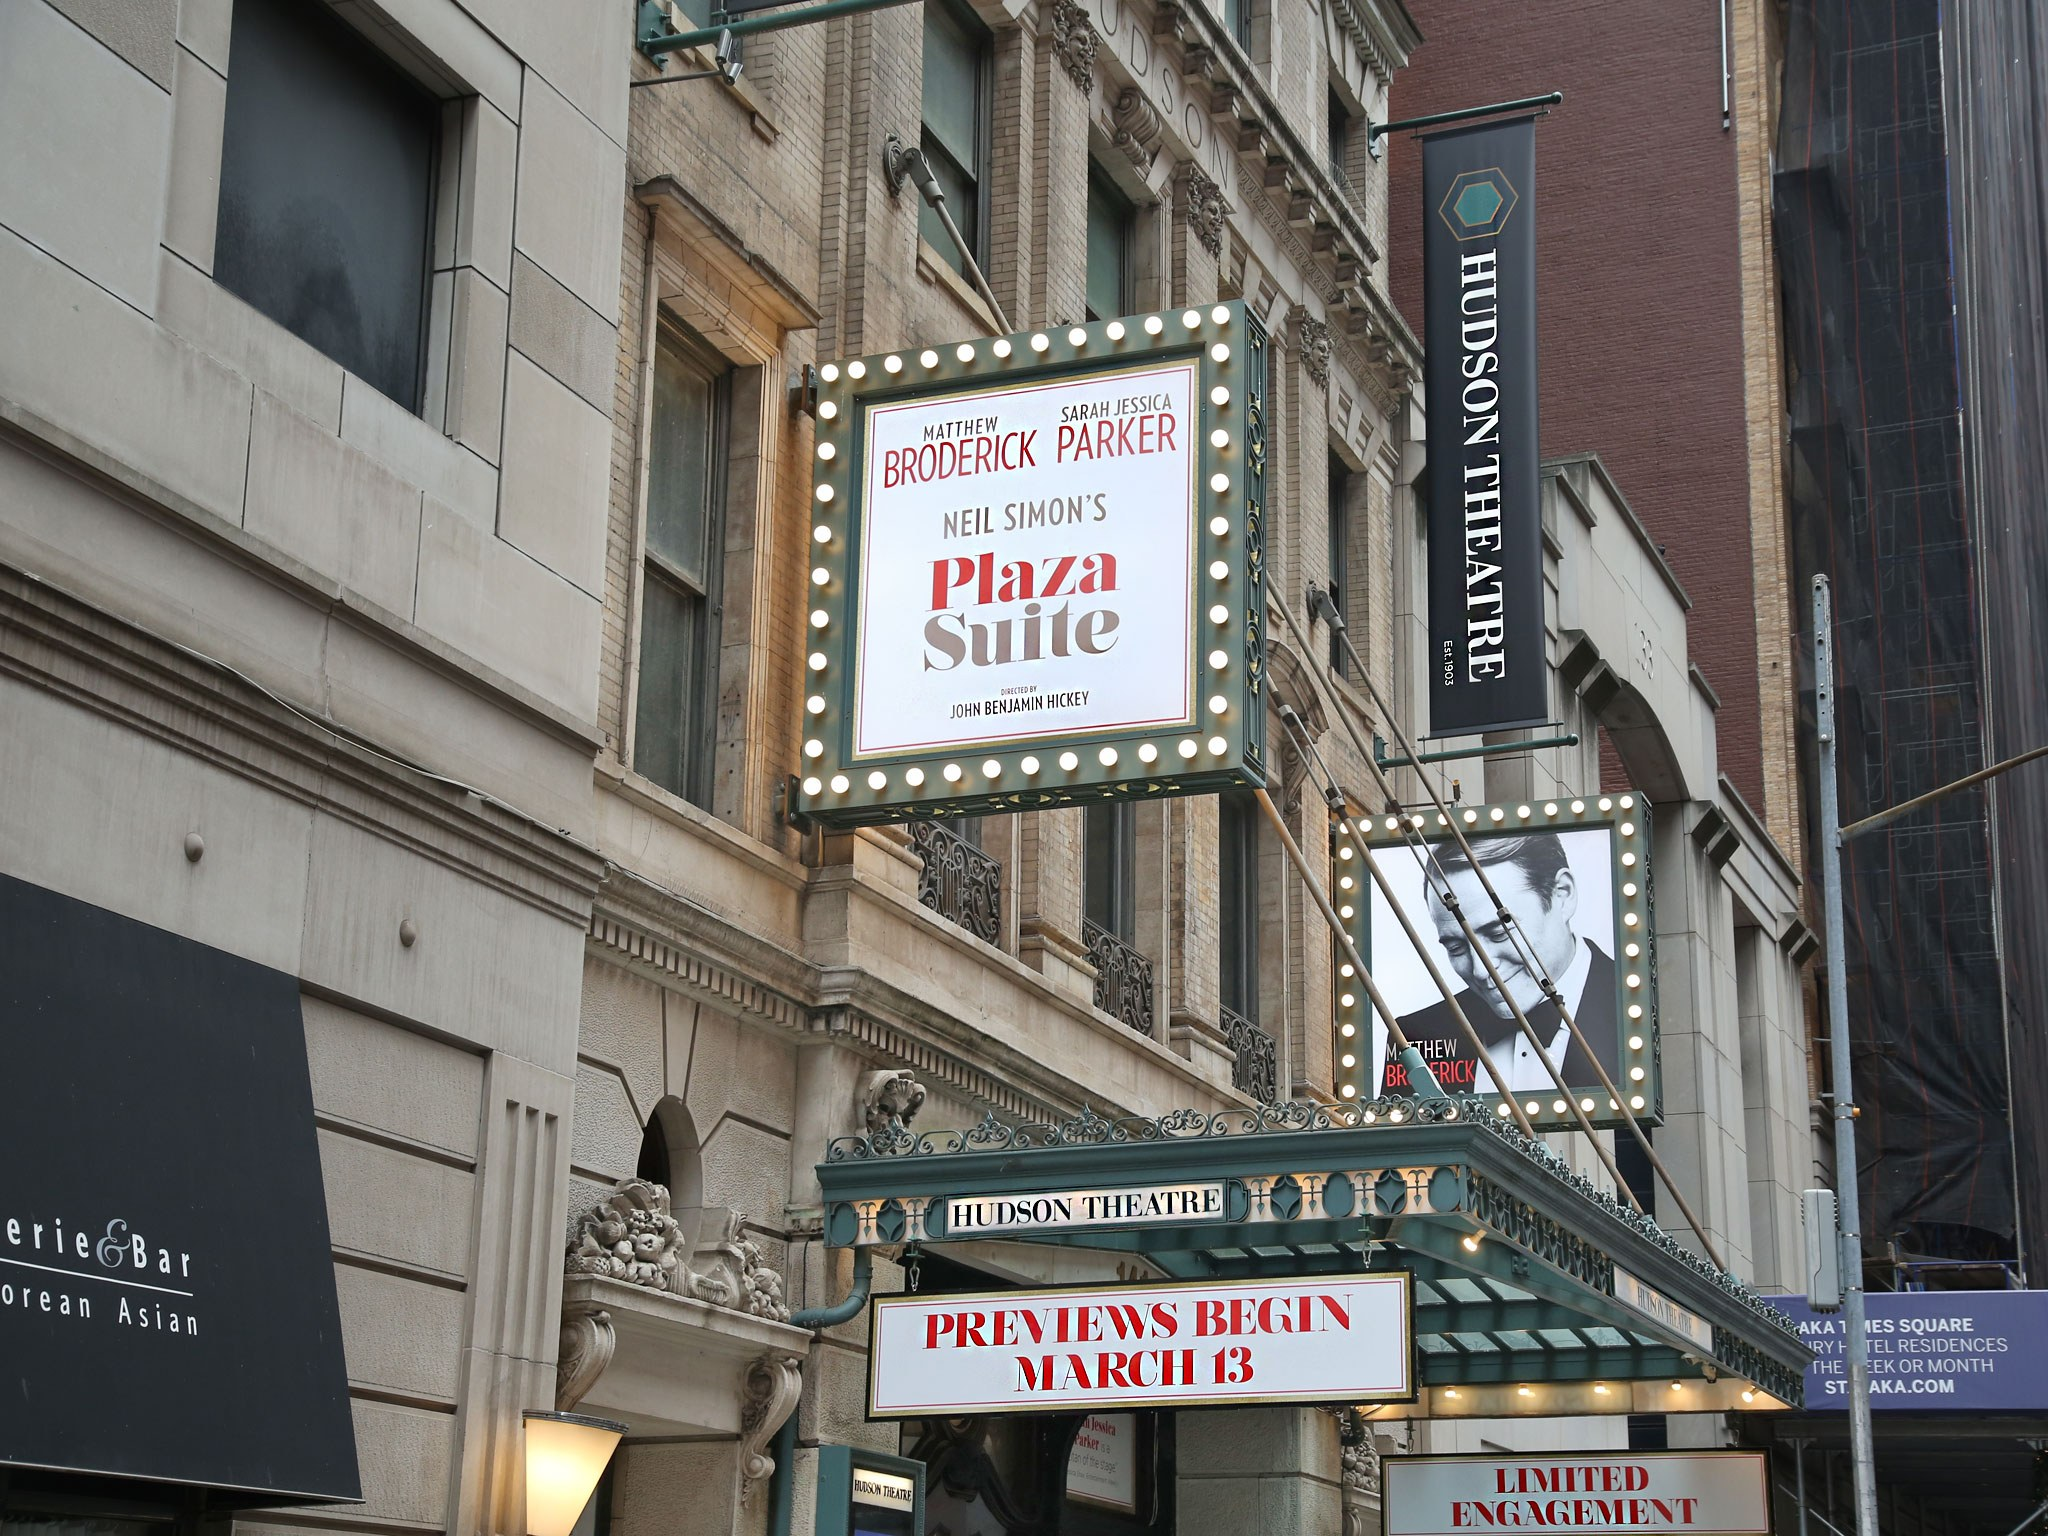 Plaza Suite Marquee at the Hudson Theatre